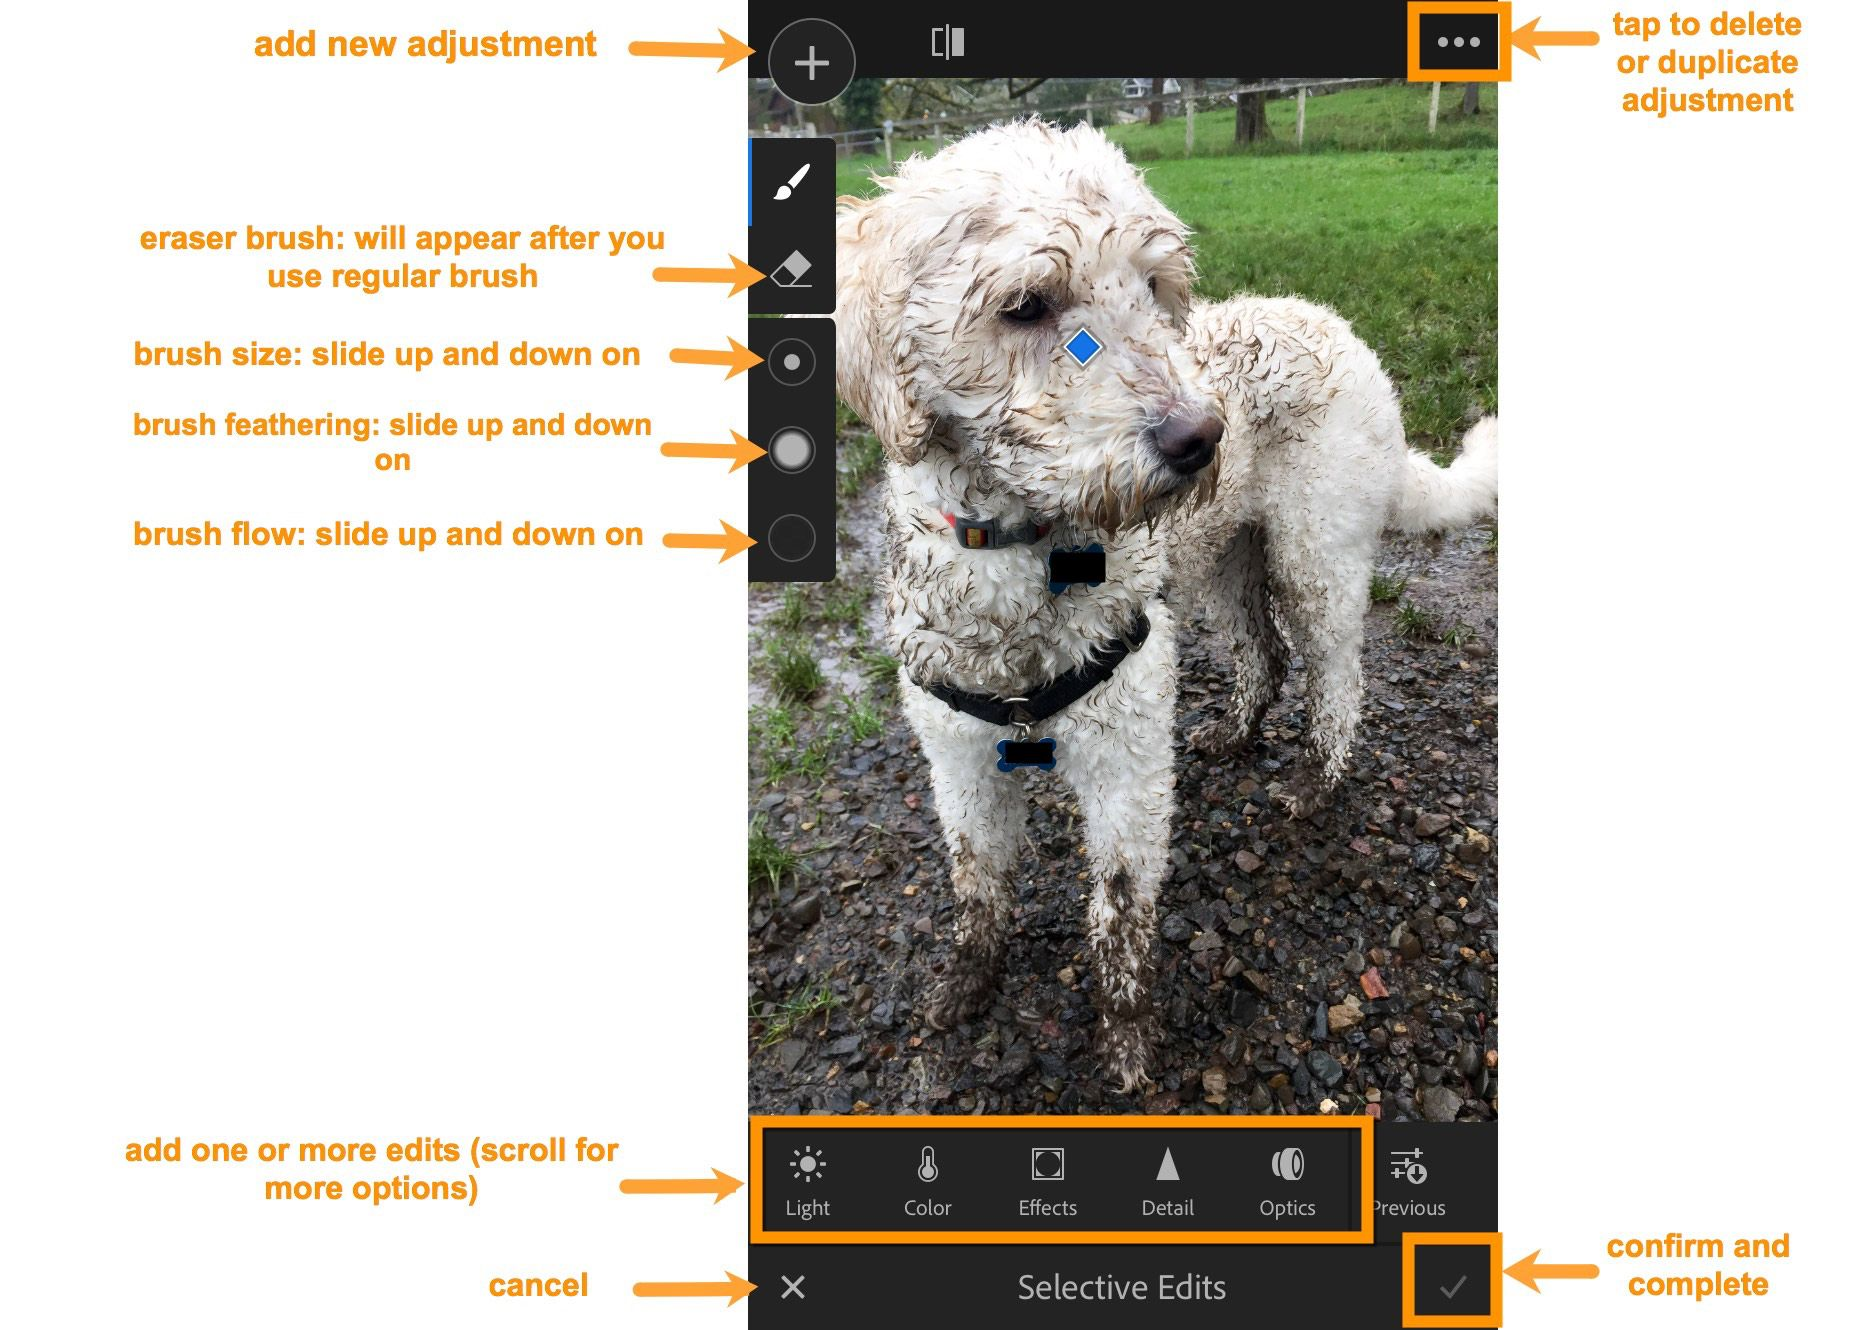 Adobe today released Lightroom mobile 2.8 for iOS and 3.0